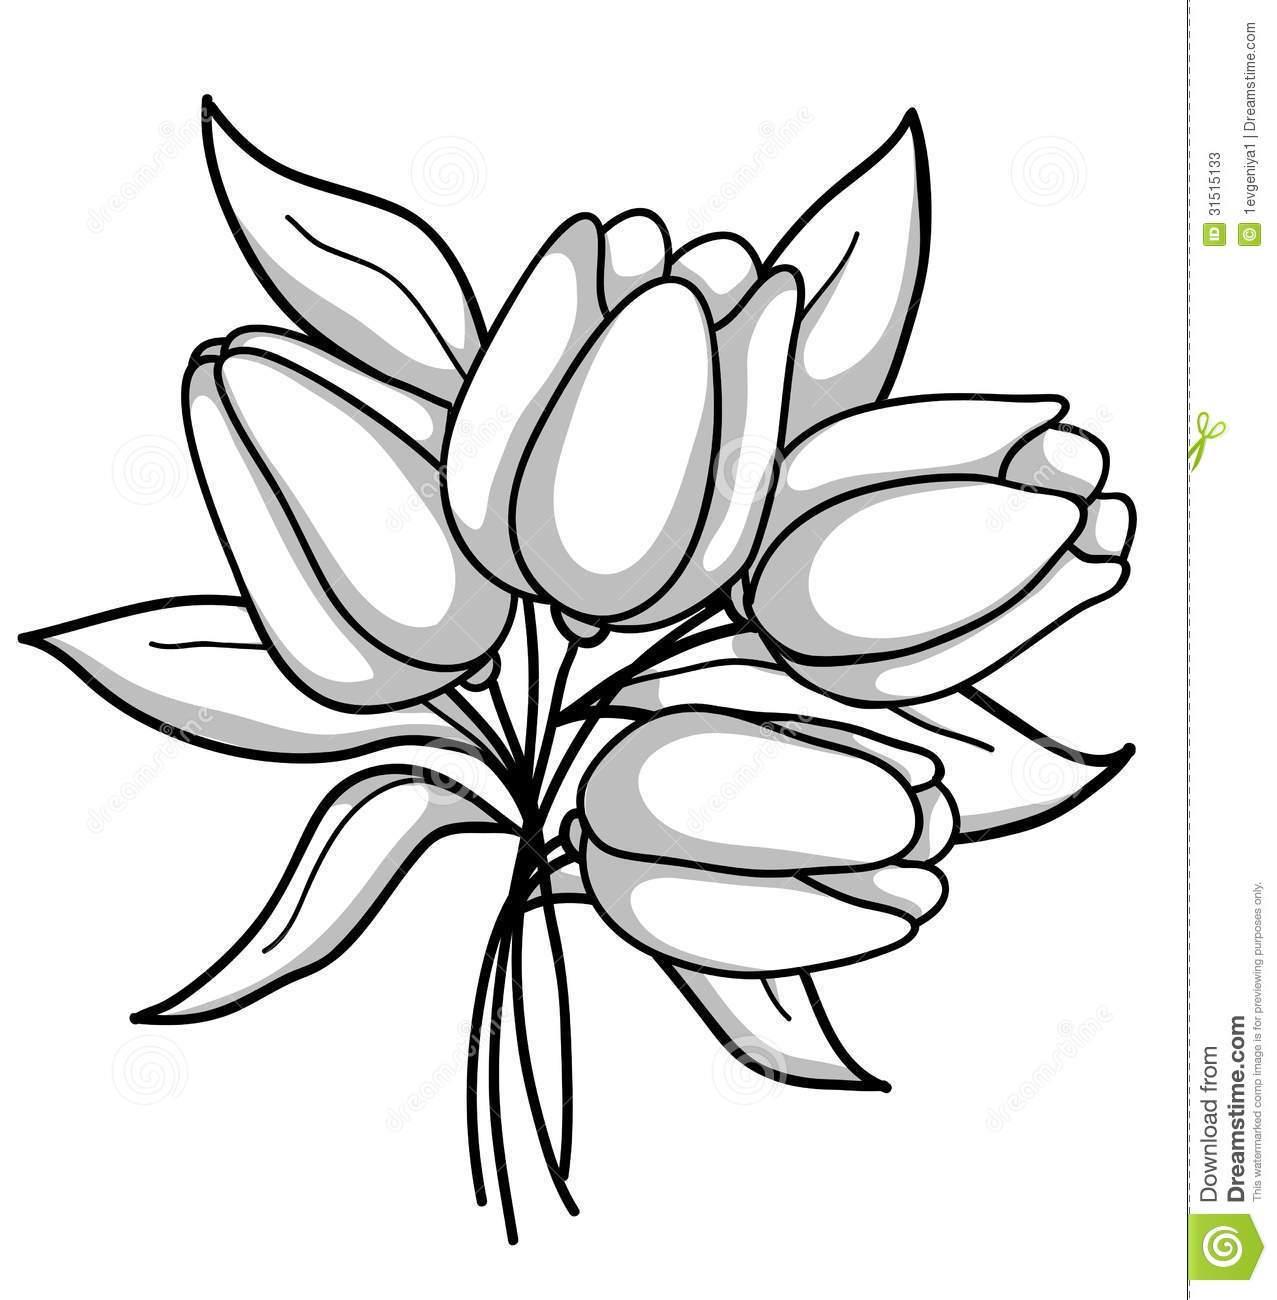 Flower station . Bouquet clipart black and white